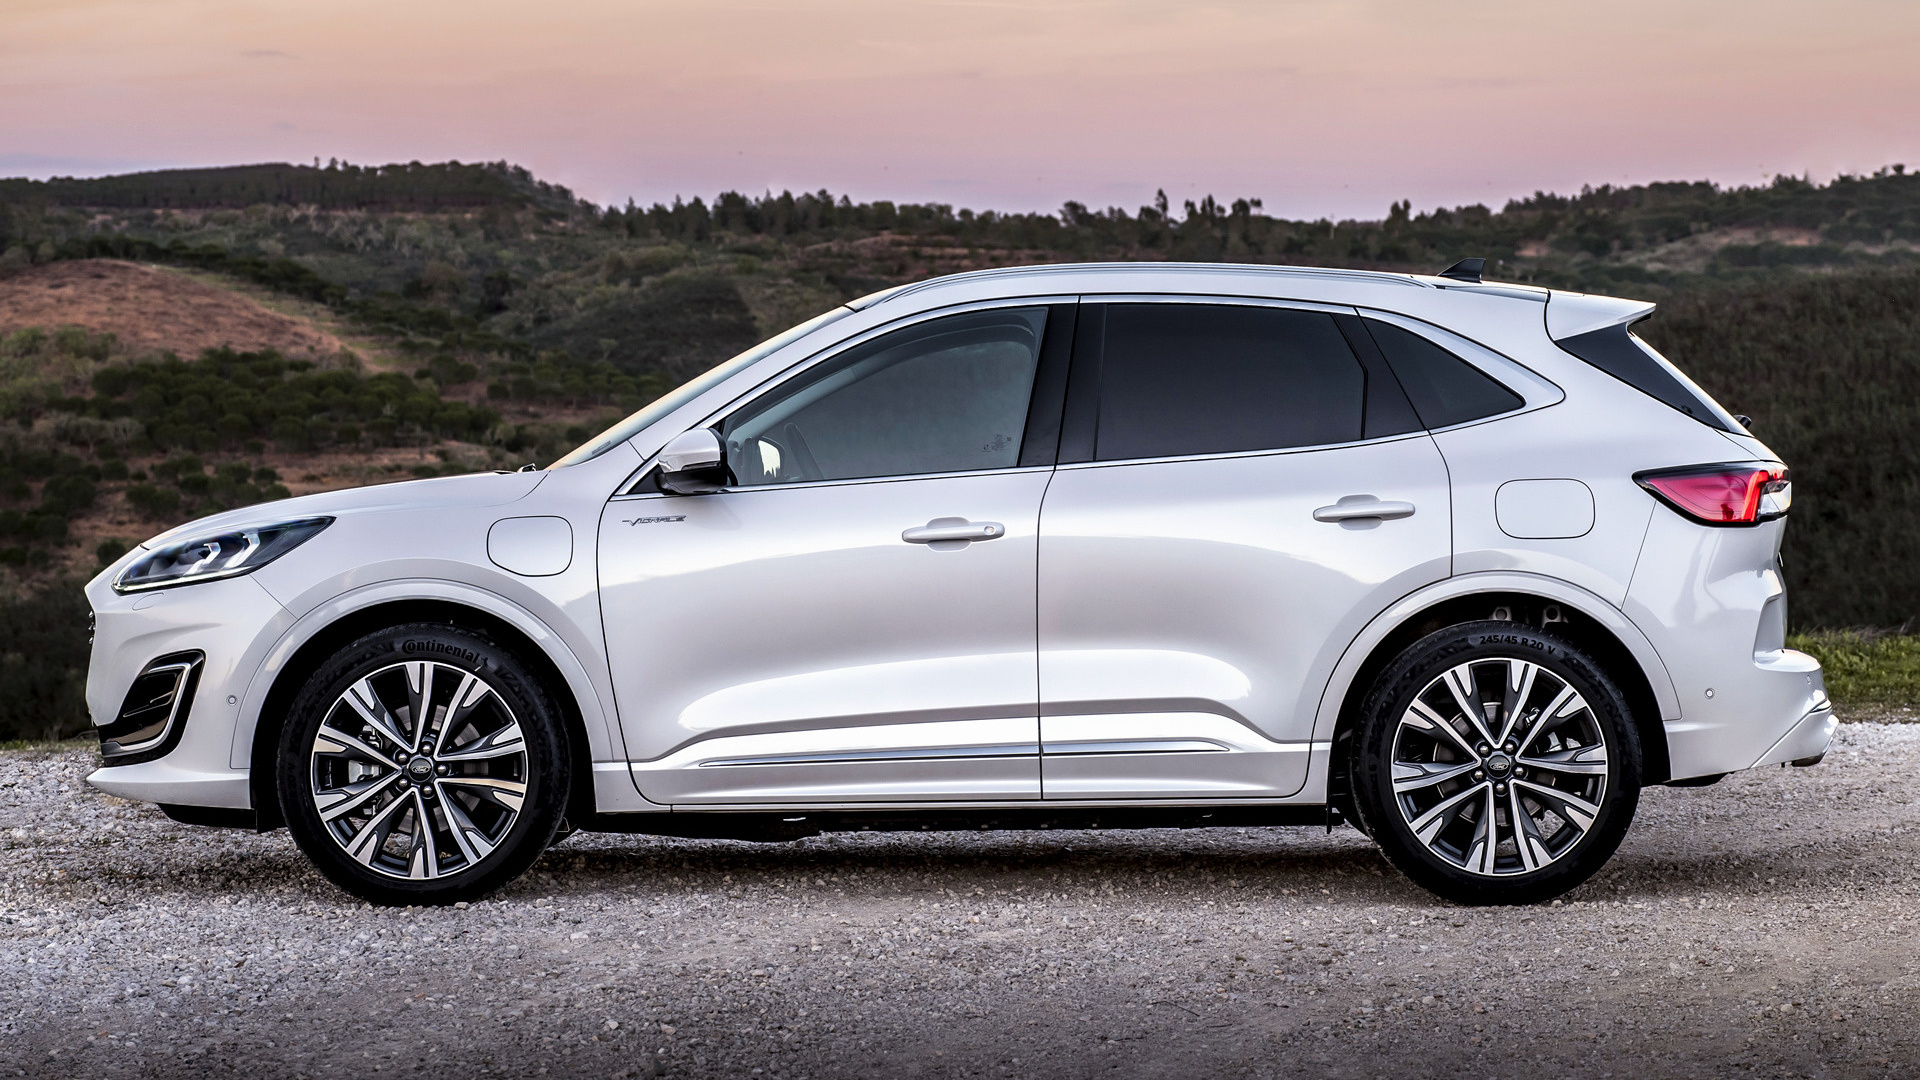 2020 ford kuga vignale plug-in hybrid - wallpapers and hd